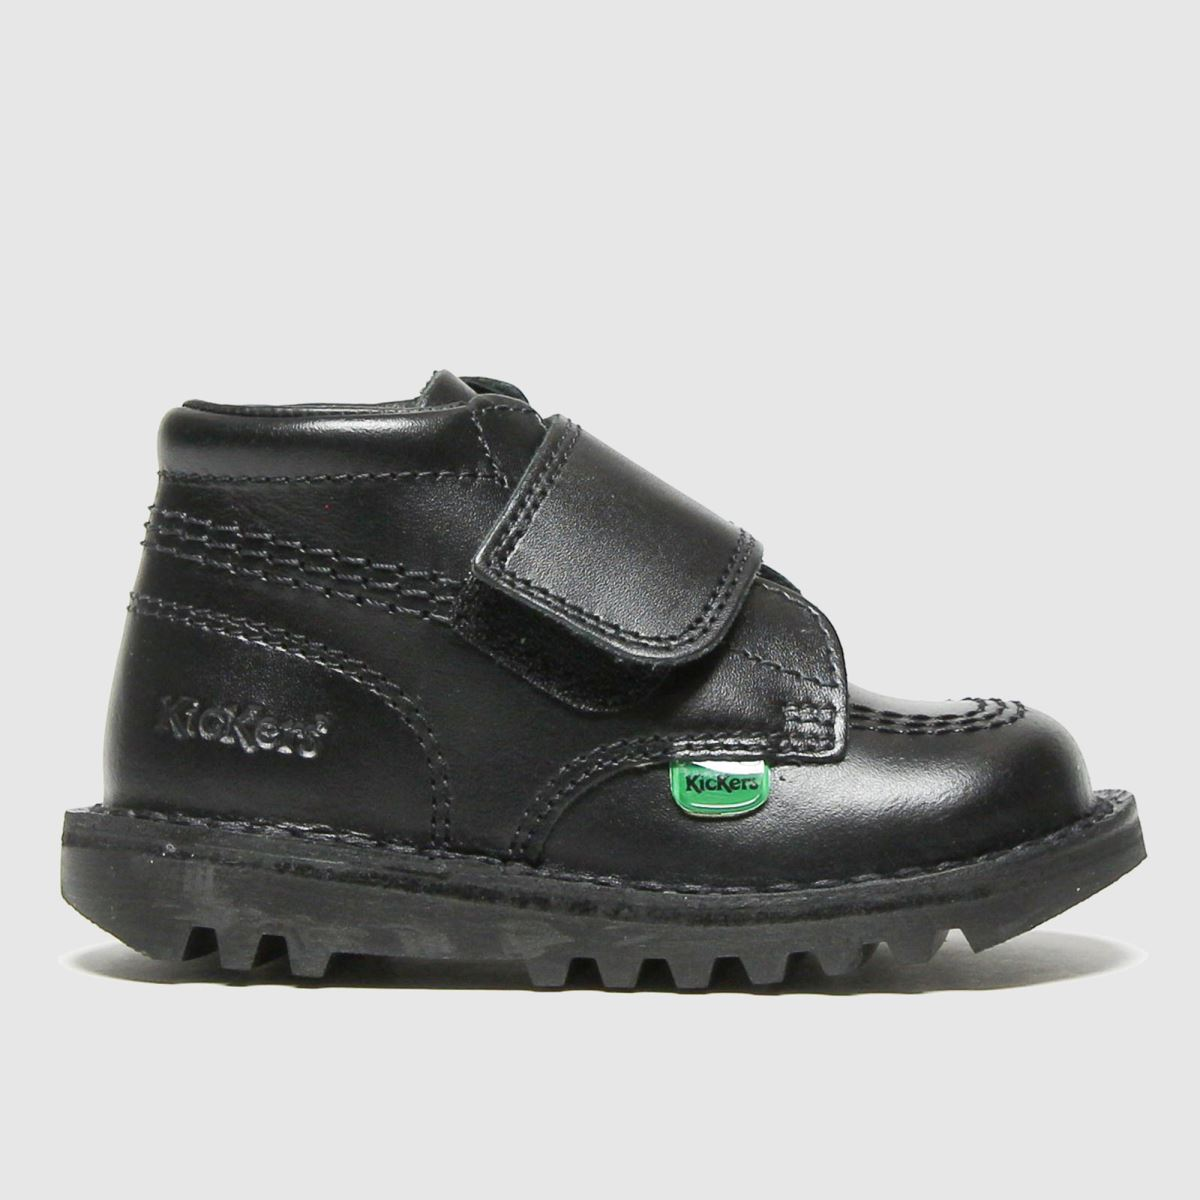 Kickers Black Kick Kilo Boots Toddler